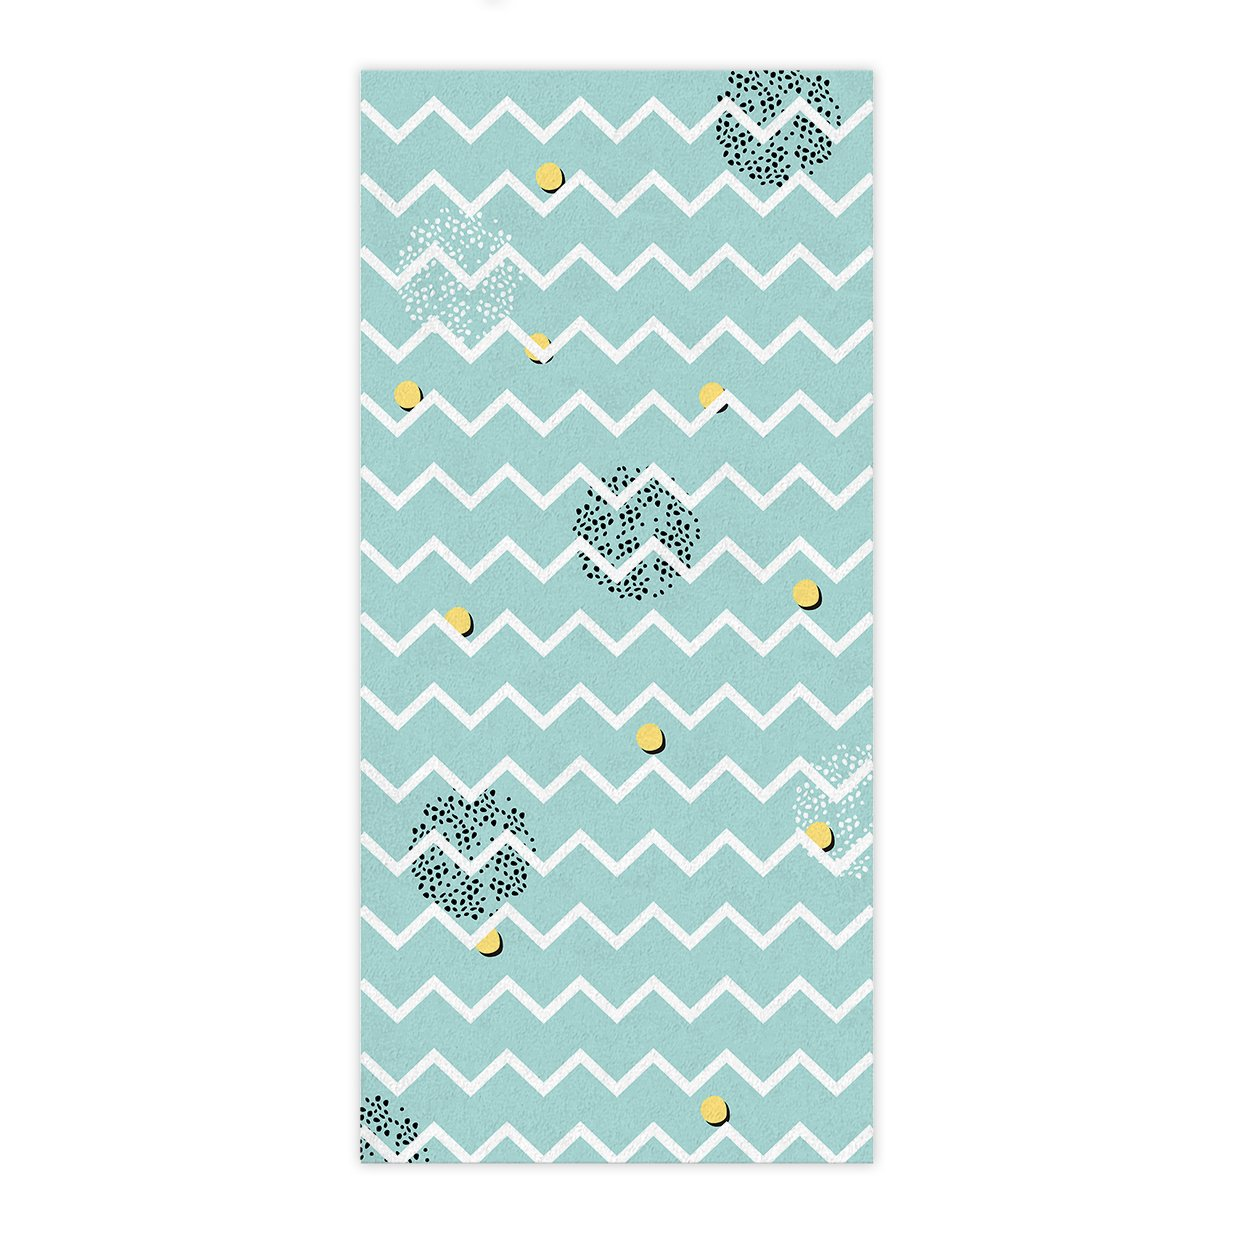 OxOHome Custom Bath Towel Quick Dry Absorbent Towels Spa Shower Wrap for College Dorms, Gyms, Locker Rooms, 27.5 x 55 inch - White Chevron Stripe Waves Mint Green Yellow Black Dot